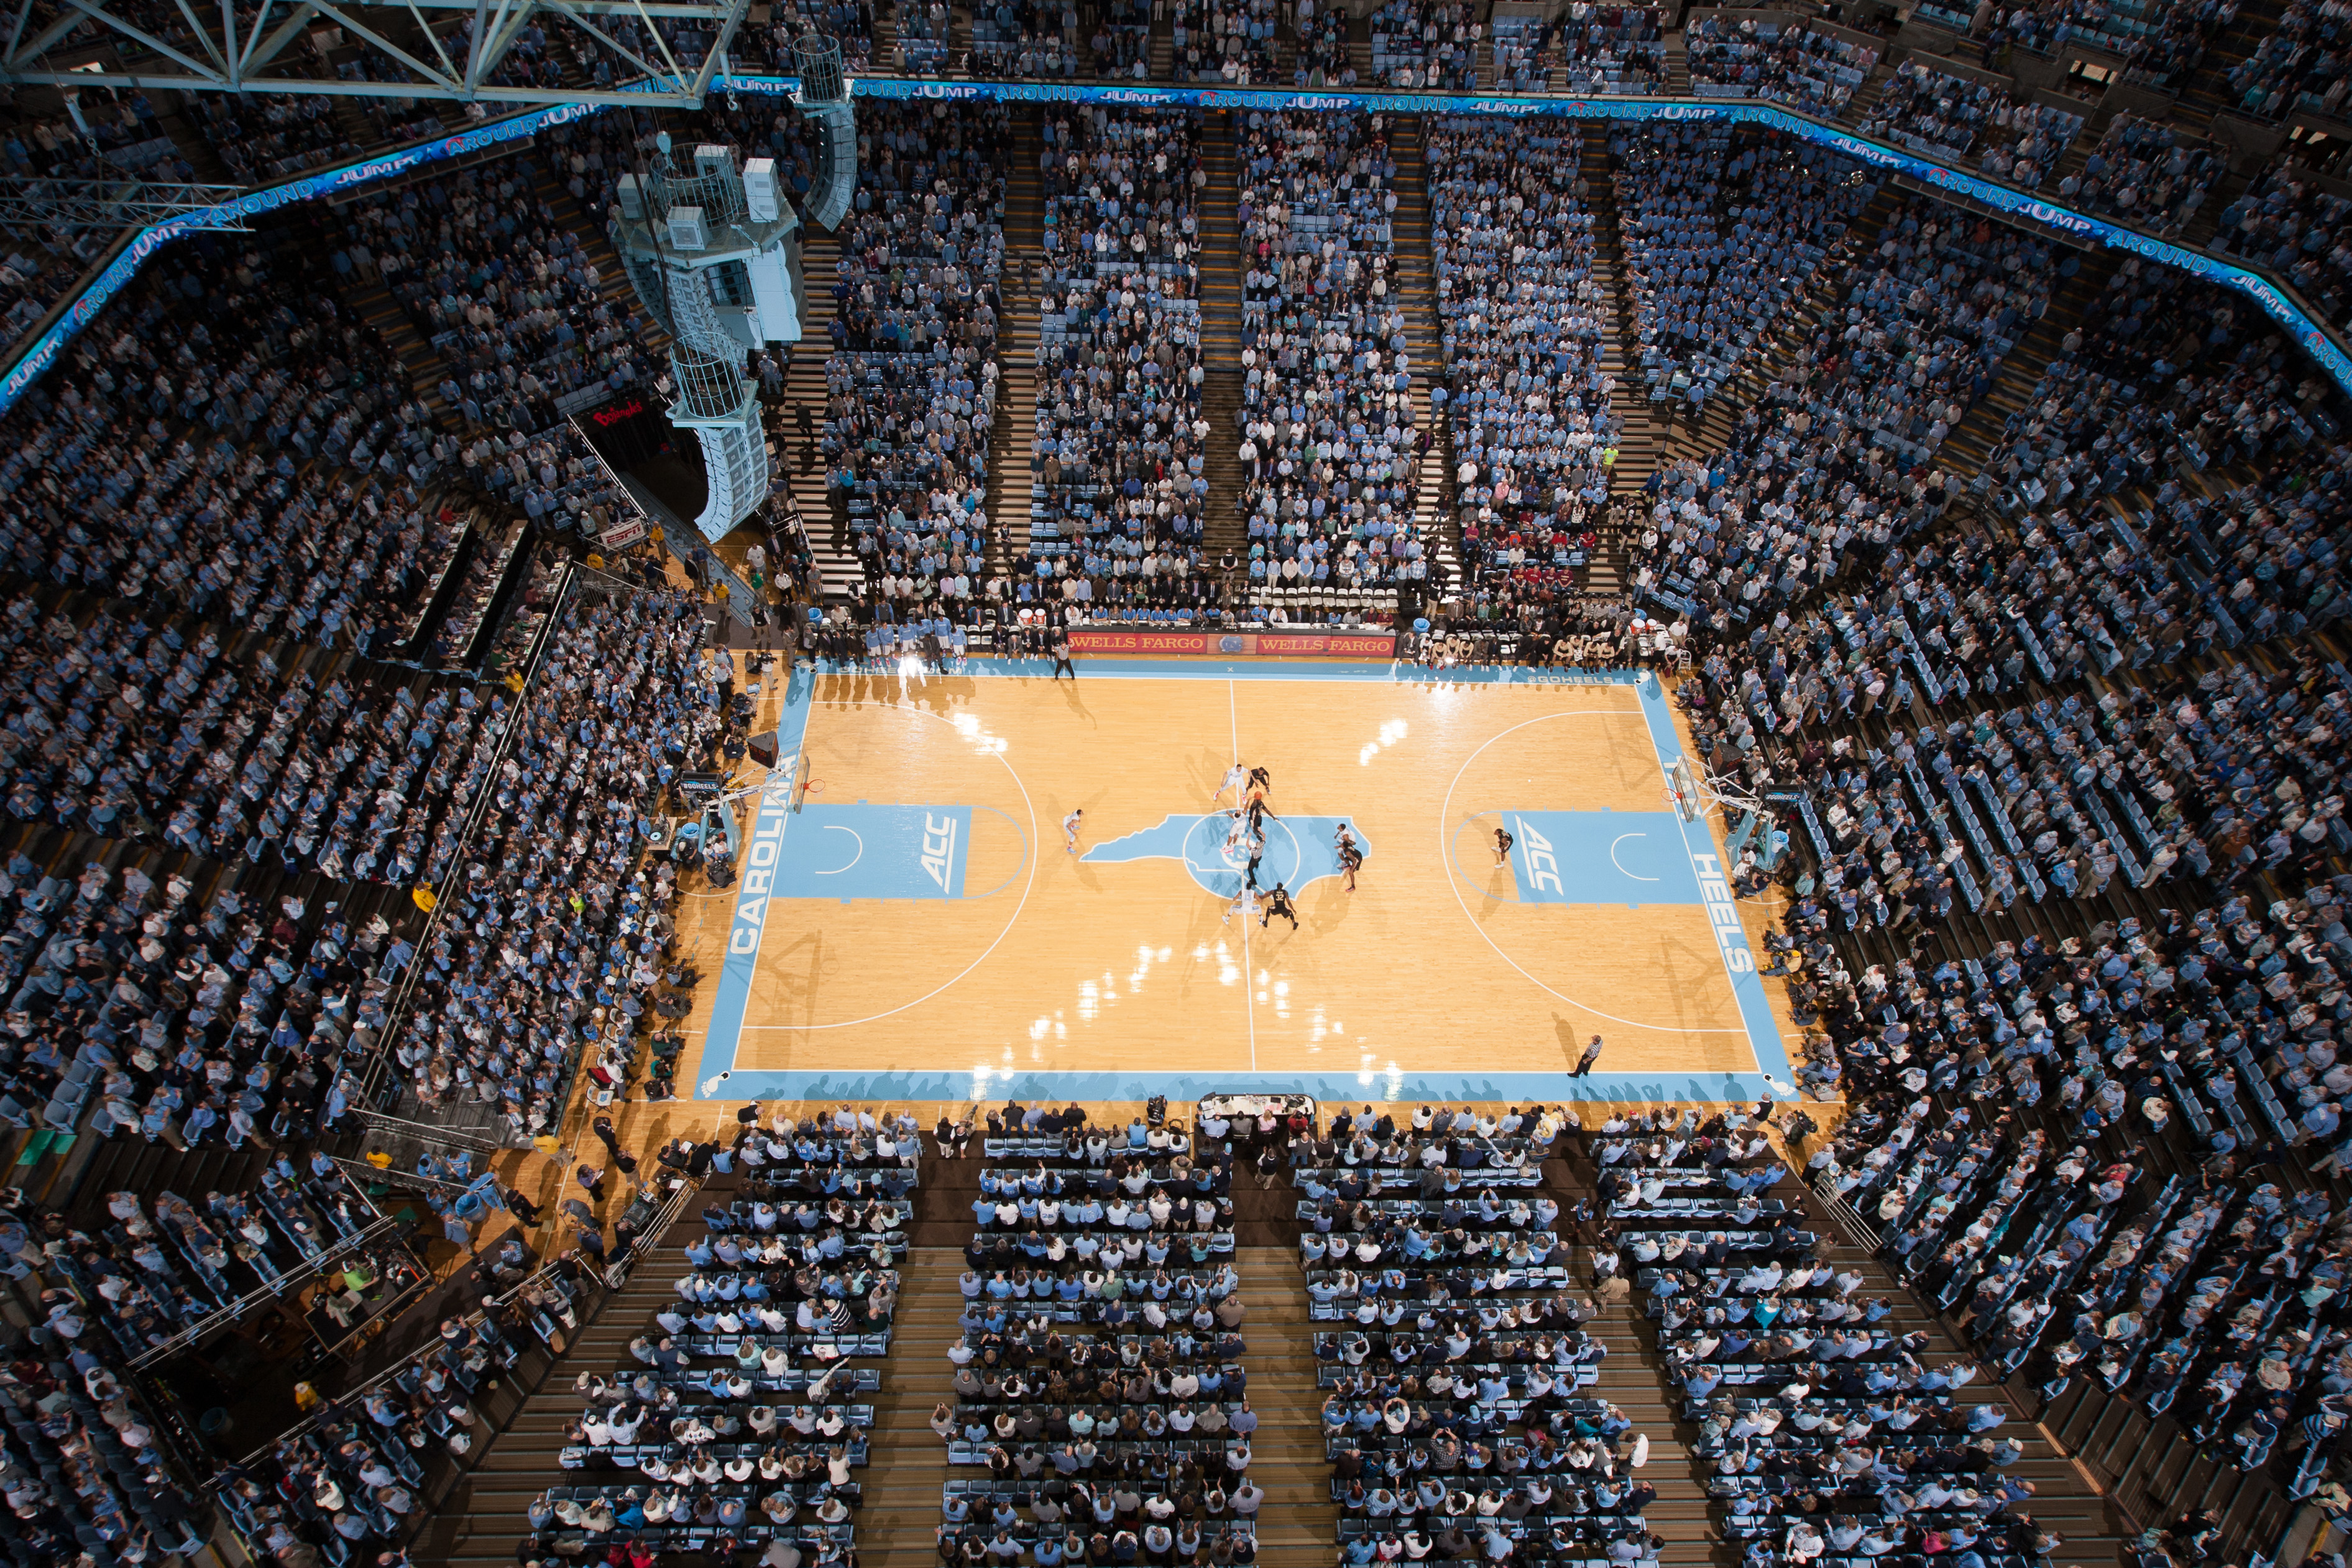 CHAPEL HILL, NC - JANUARY 24: A wide-angle overhead general view of the Dean Smith Center as the North Carolina Tar Heels play against the Florida State Seminoles on January 24, 2015 at the Dean E. Smith Center in Chapel Hill, North Carolina. North Carolina won 78-74. (Photo by Peyton Williams/UNC/Getty Images)